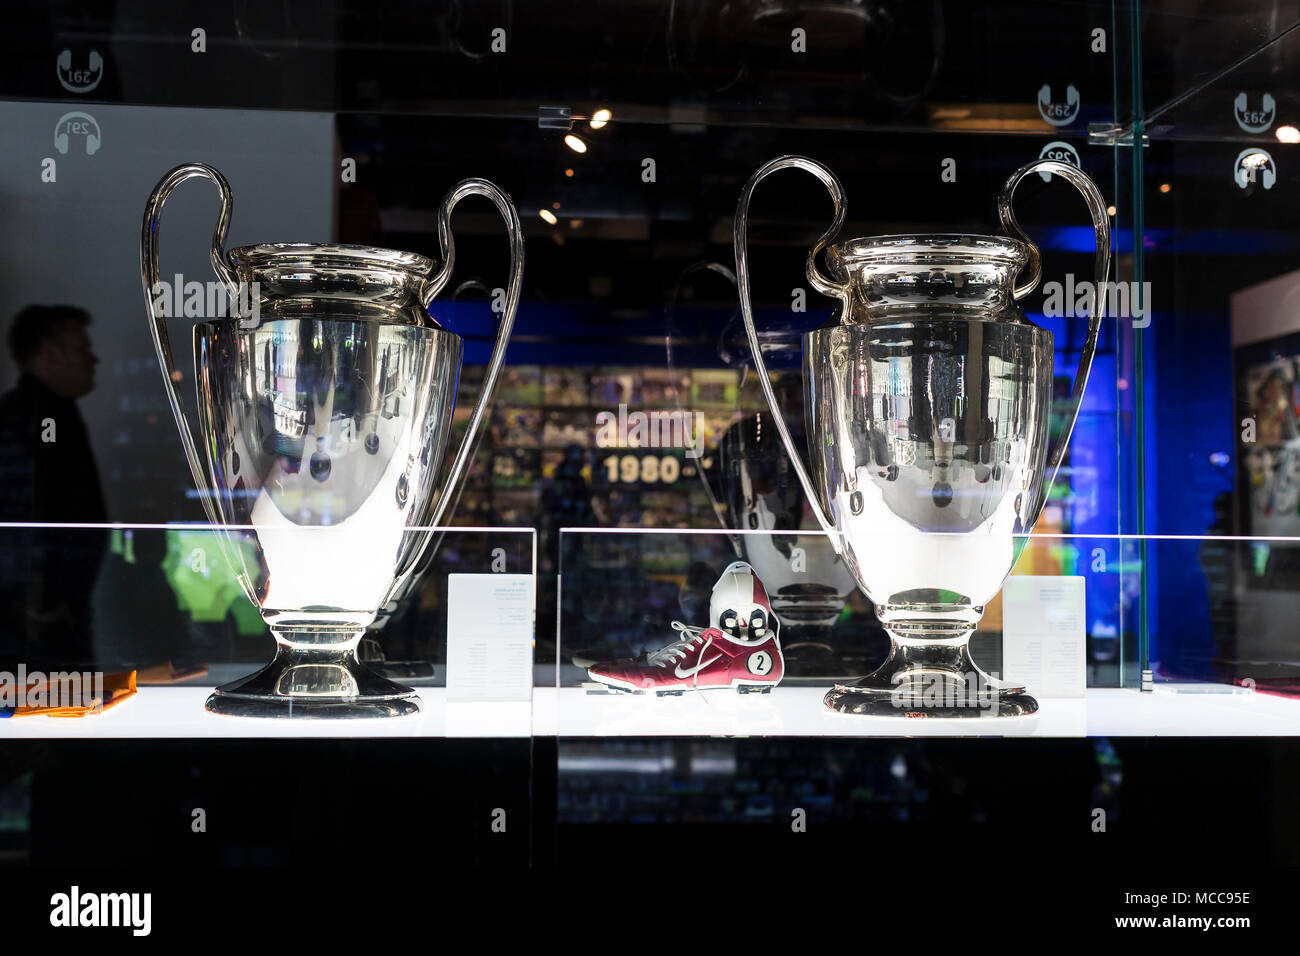 BARCELONA, SPAIN - 12 JANUARY 2018: The museum of trophies of the cups and awards of the team FC Barcelona in the of Camp Nou. - Stock Image